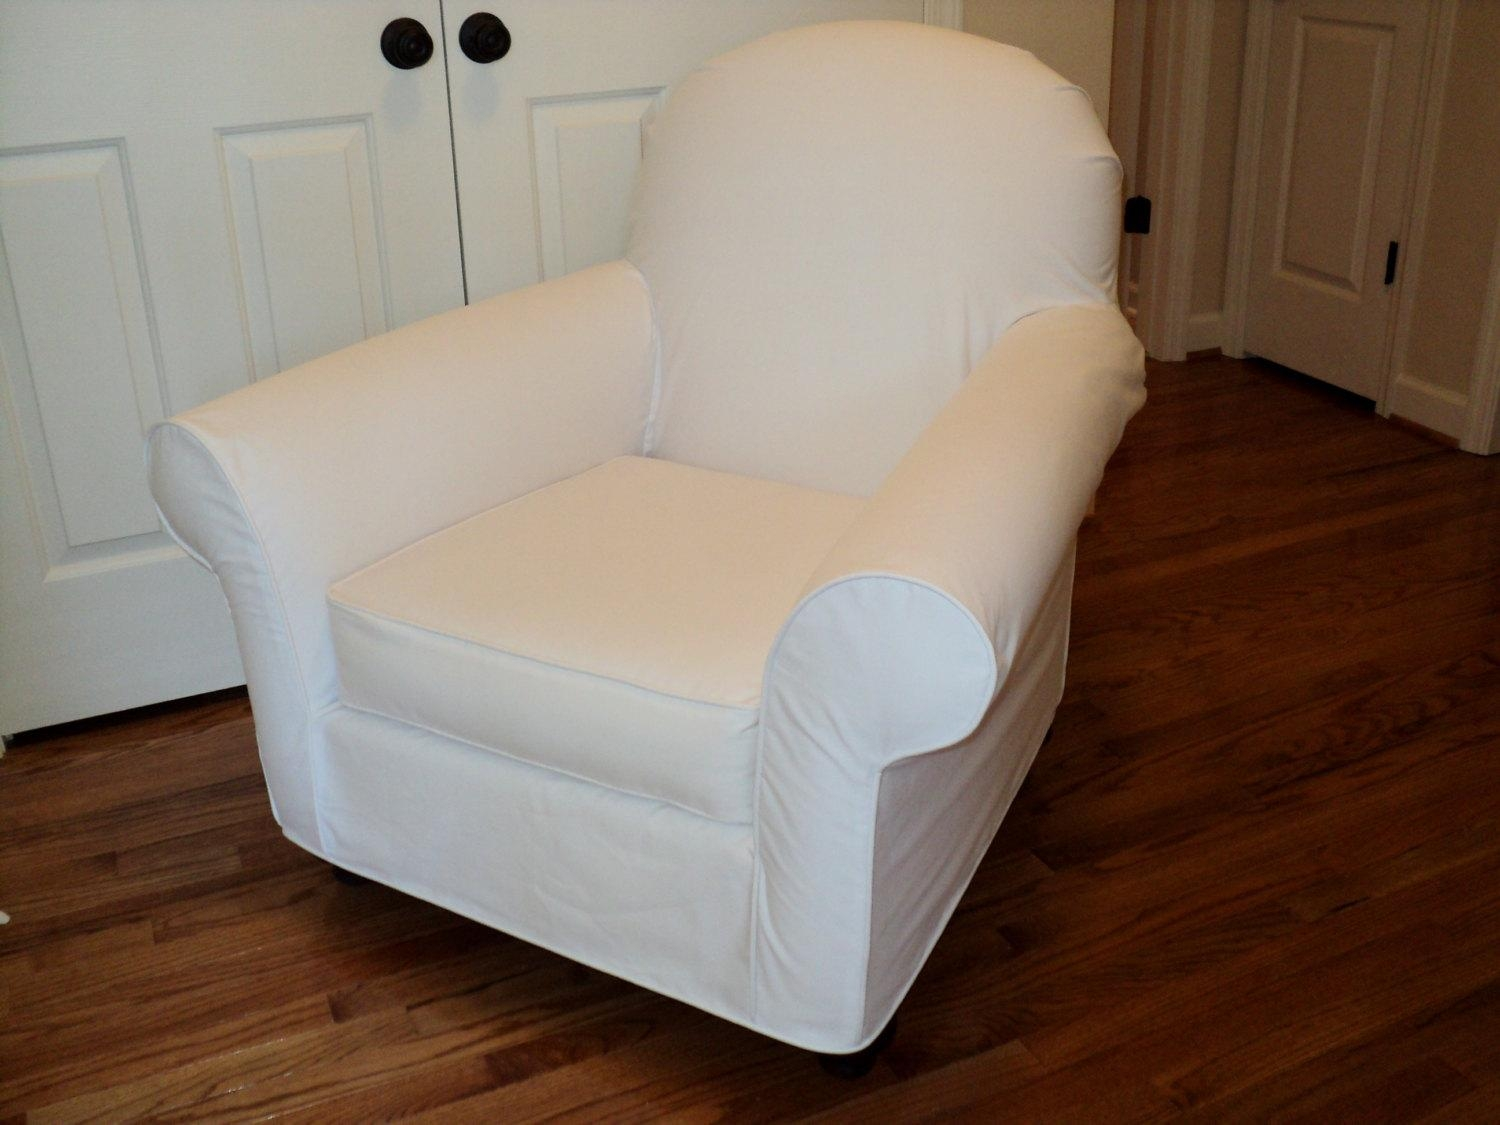 Pottery Barn Carlisle Sofa Review Home Design Idea : custom slipcover for your pb dream rocker with wooden pertaining to pottery barn chair slipcovers from askhomedesign.com size 1500 x 1125 jpeg 506kB